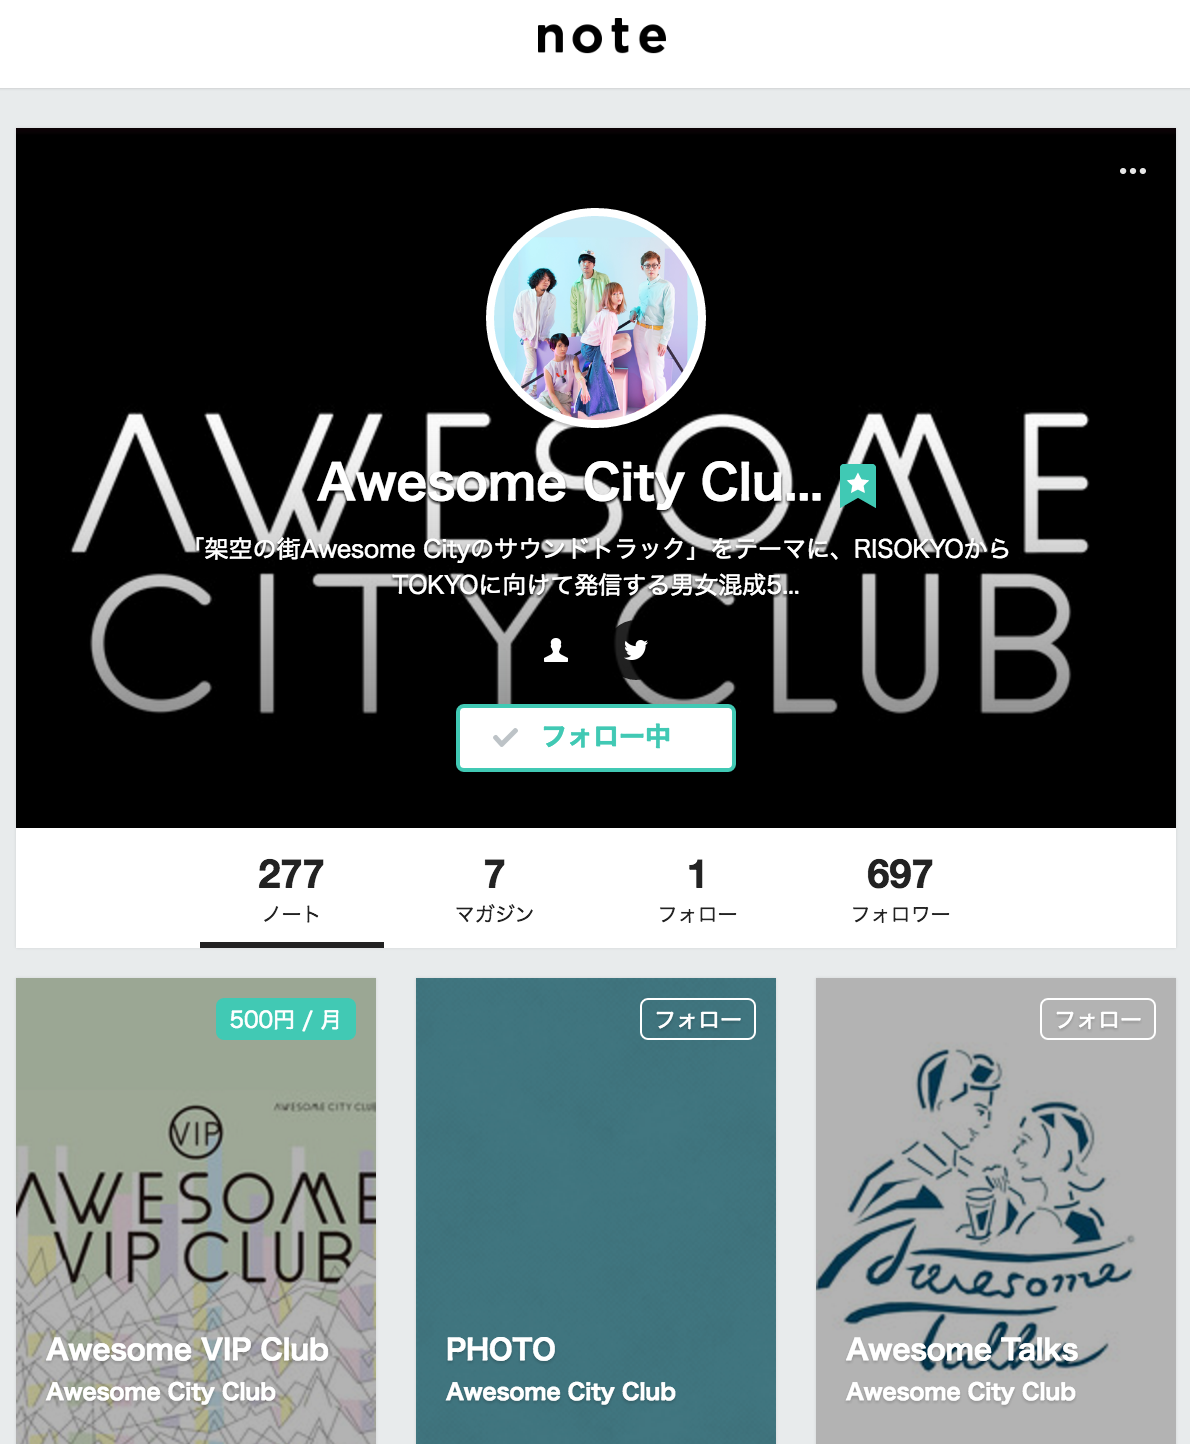 Awesome city clubのnote